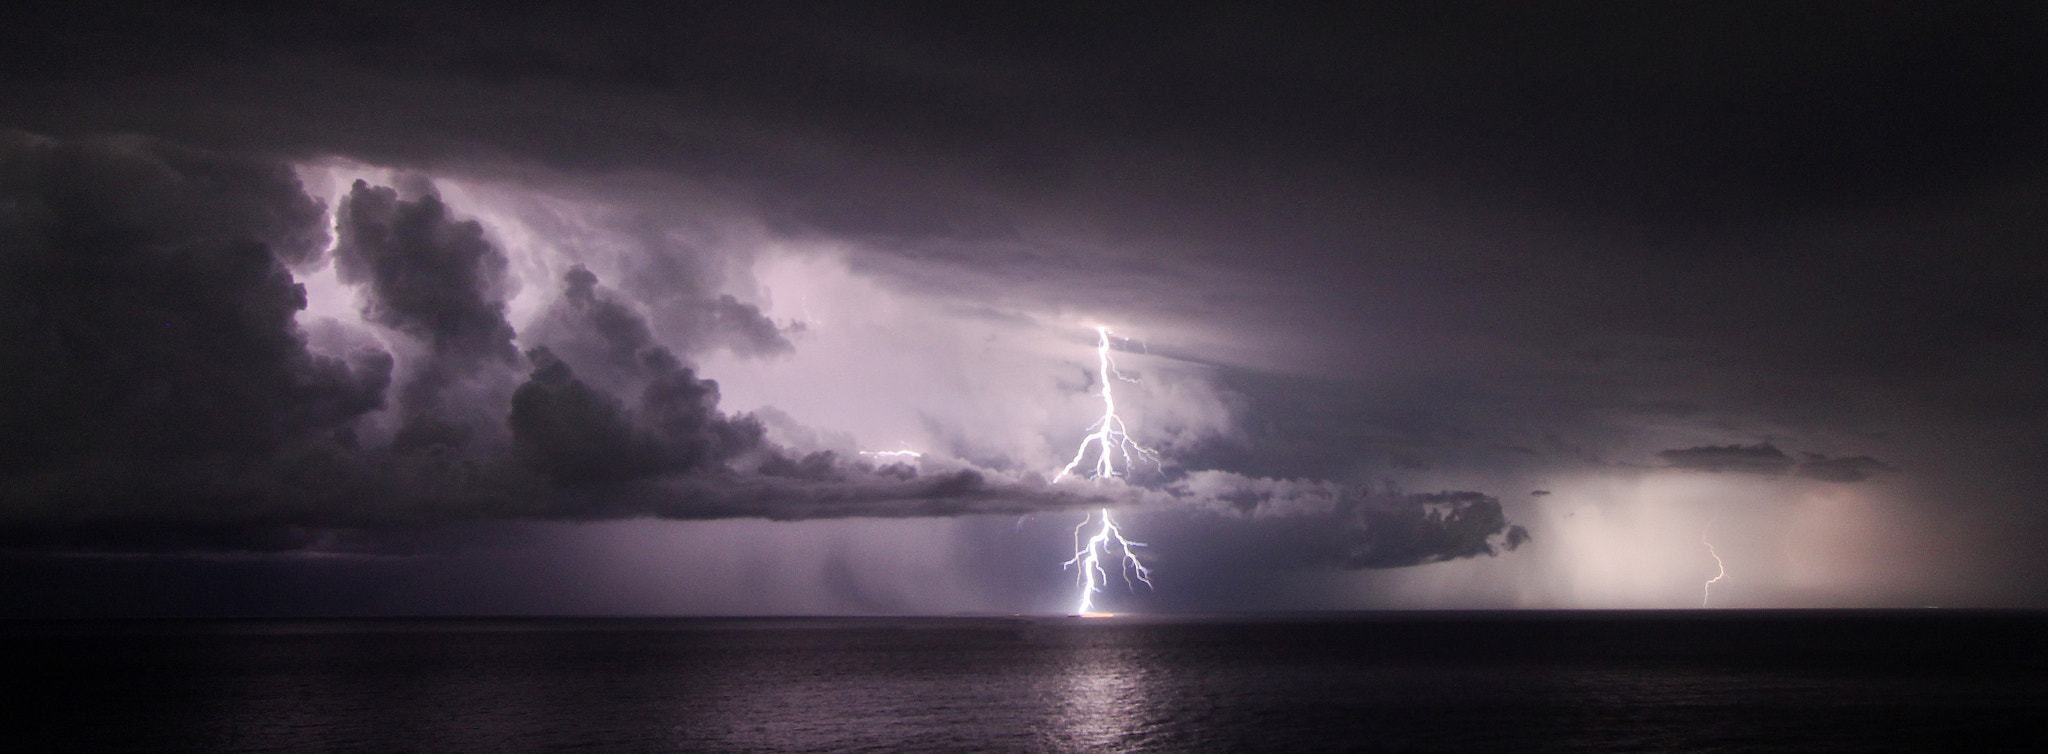 Photograph Lightning over Byron Bay by Shannon Ley on 500px